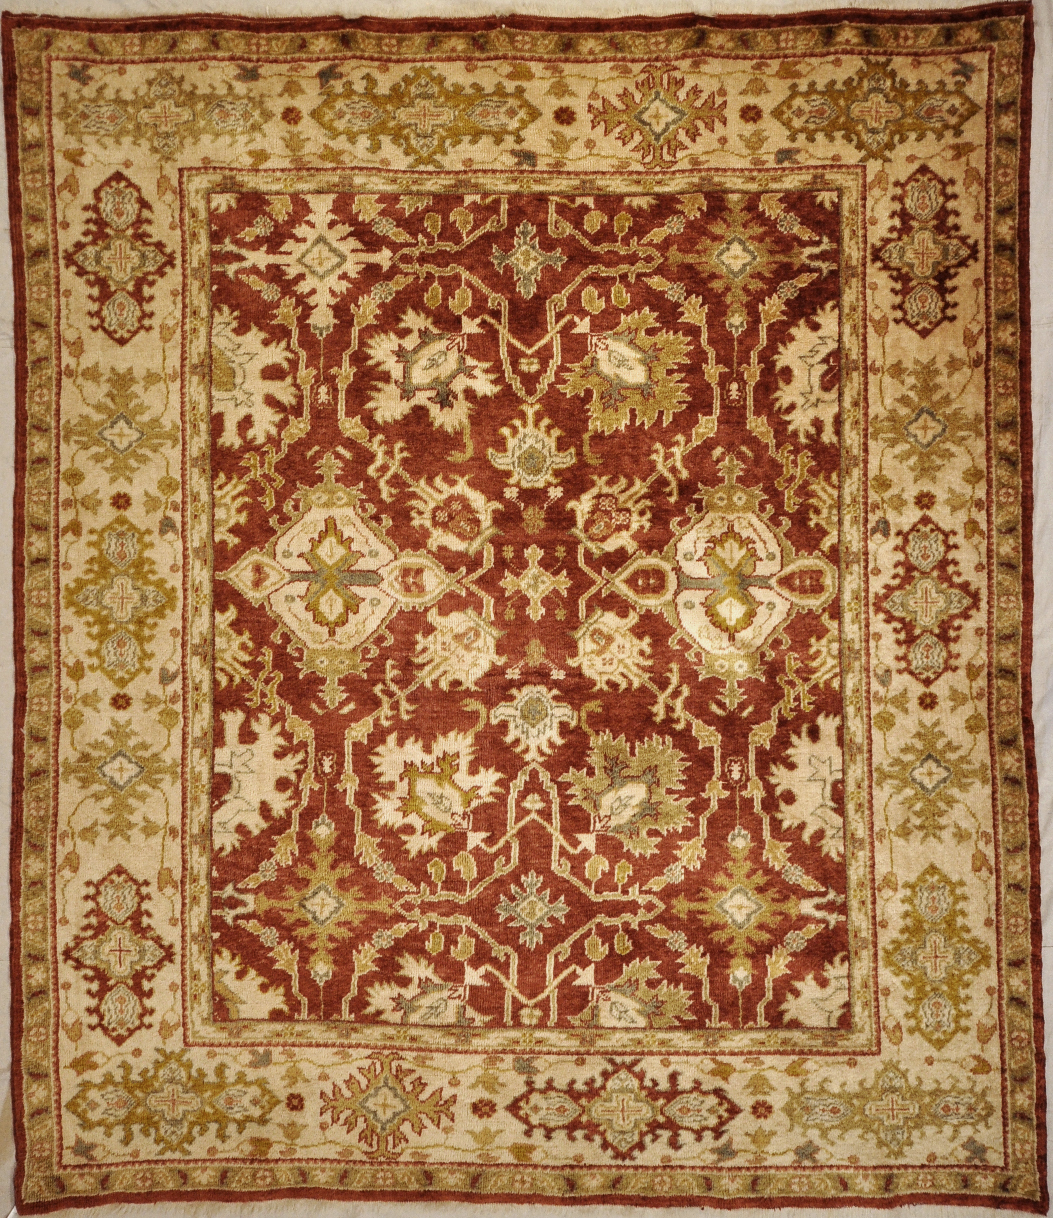 Fine Angora Oushak rugs and more oriental carpet 29245-